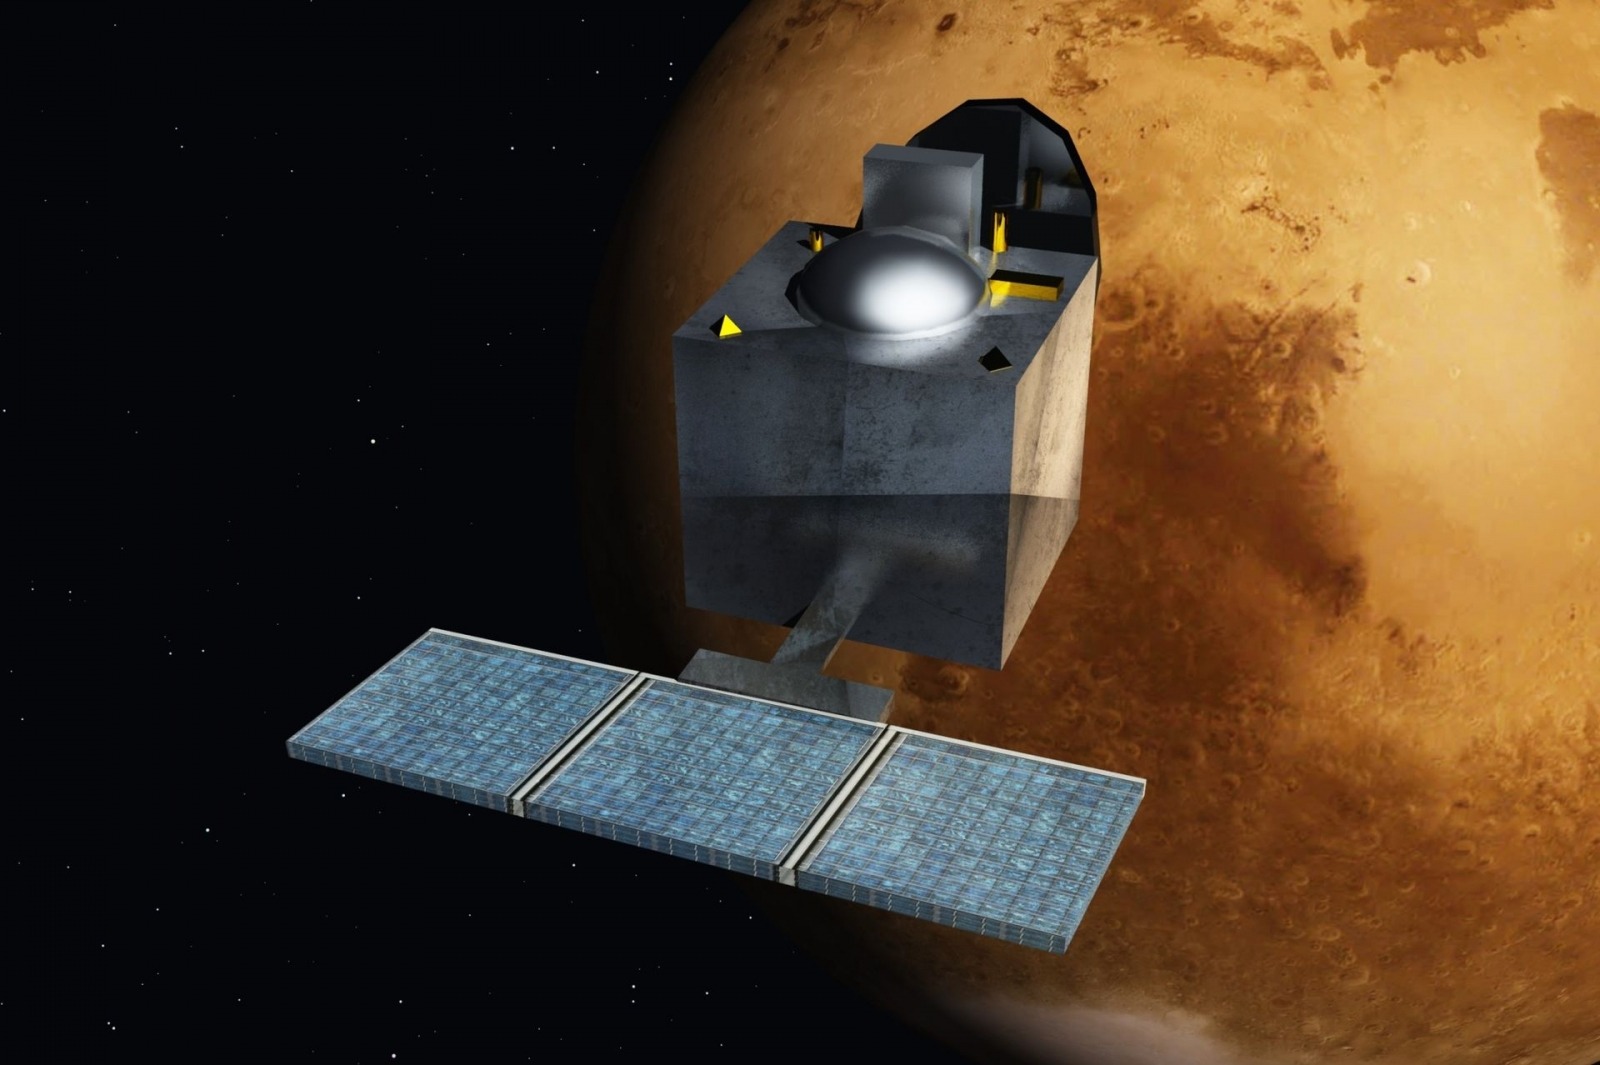 India Mars Orbiter Mission spacecraft Mangalyaan